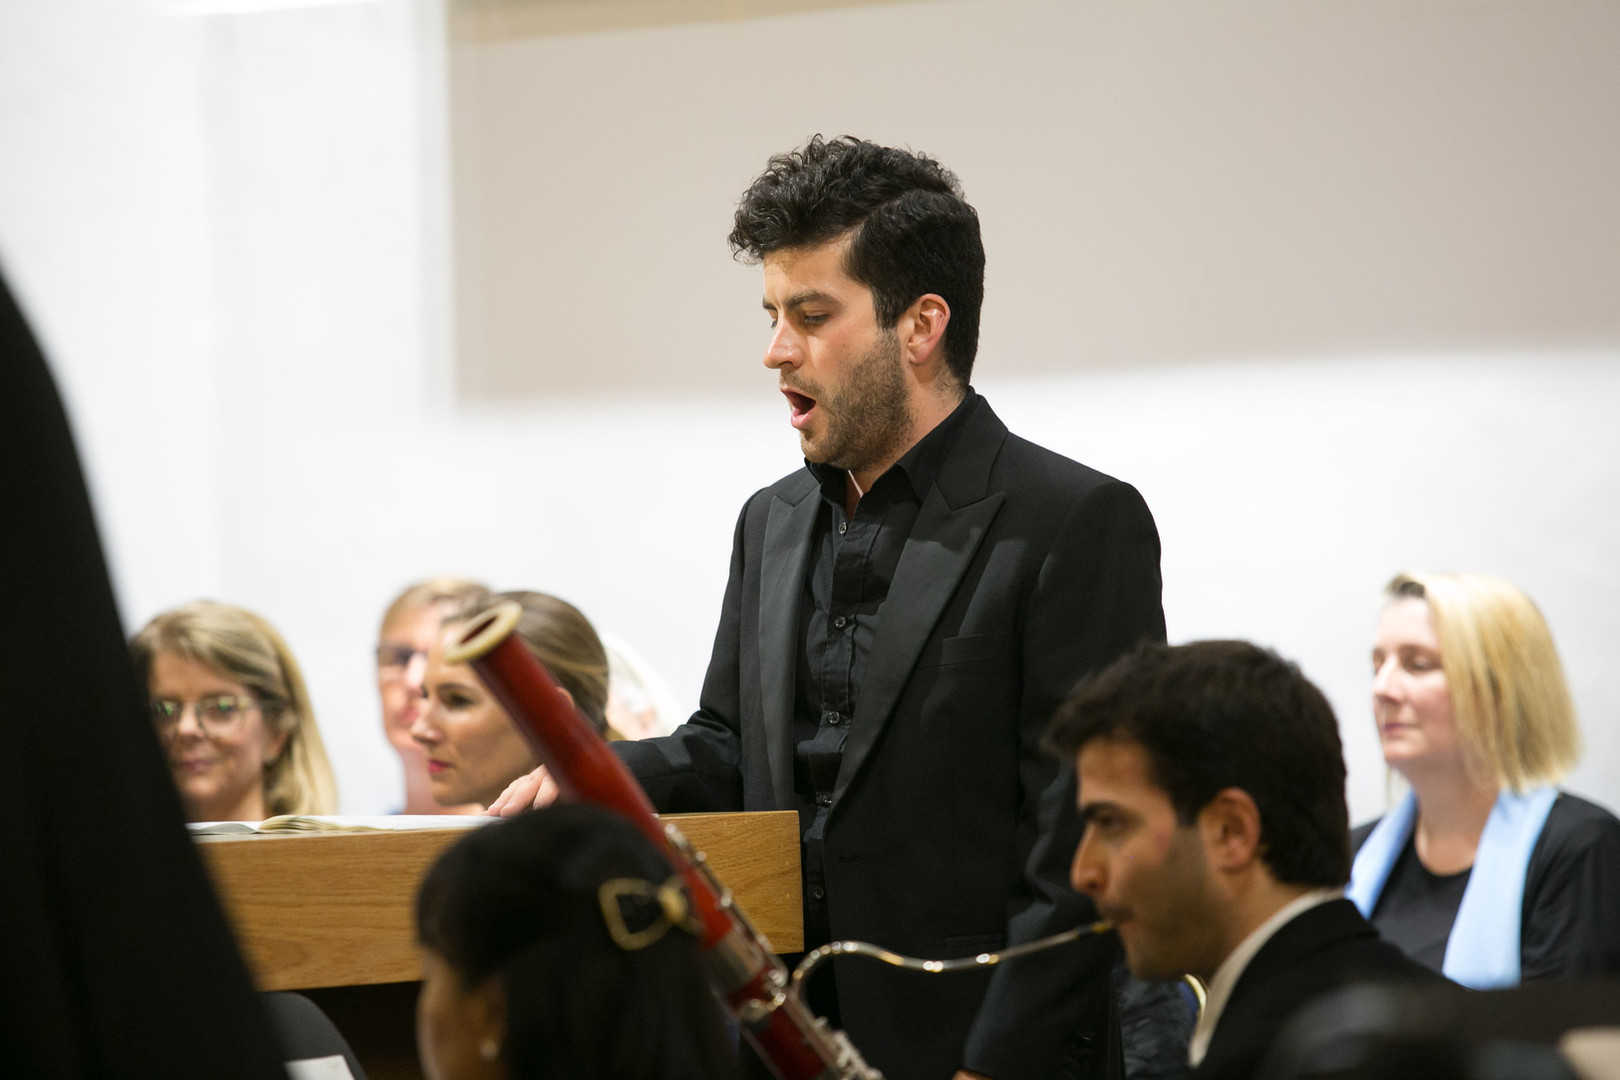 Tenor David de Winter performing Bach's Ascension Oratorio with Doha Baroque Ensemble